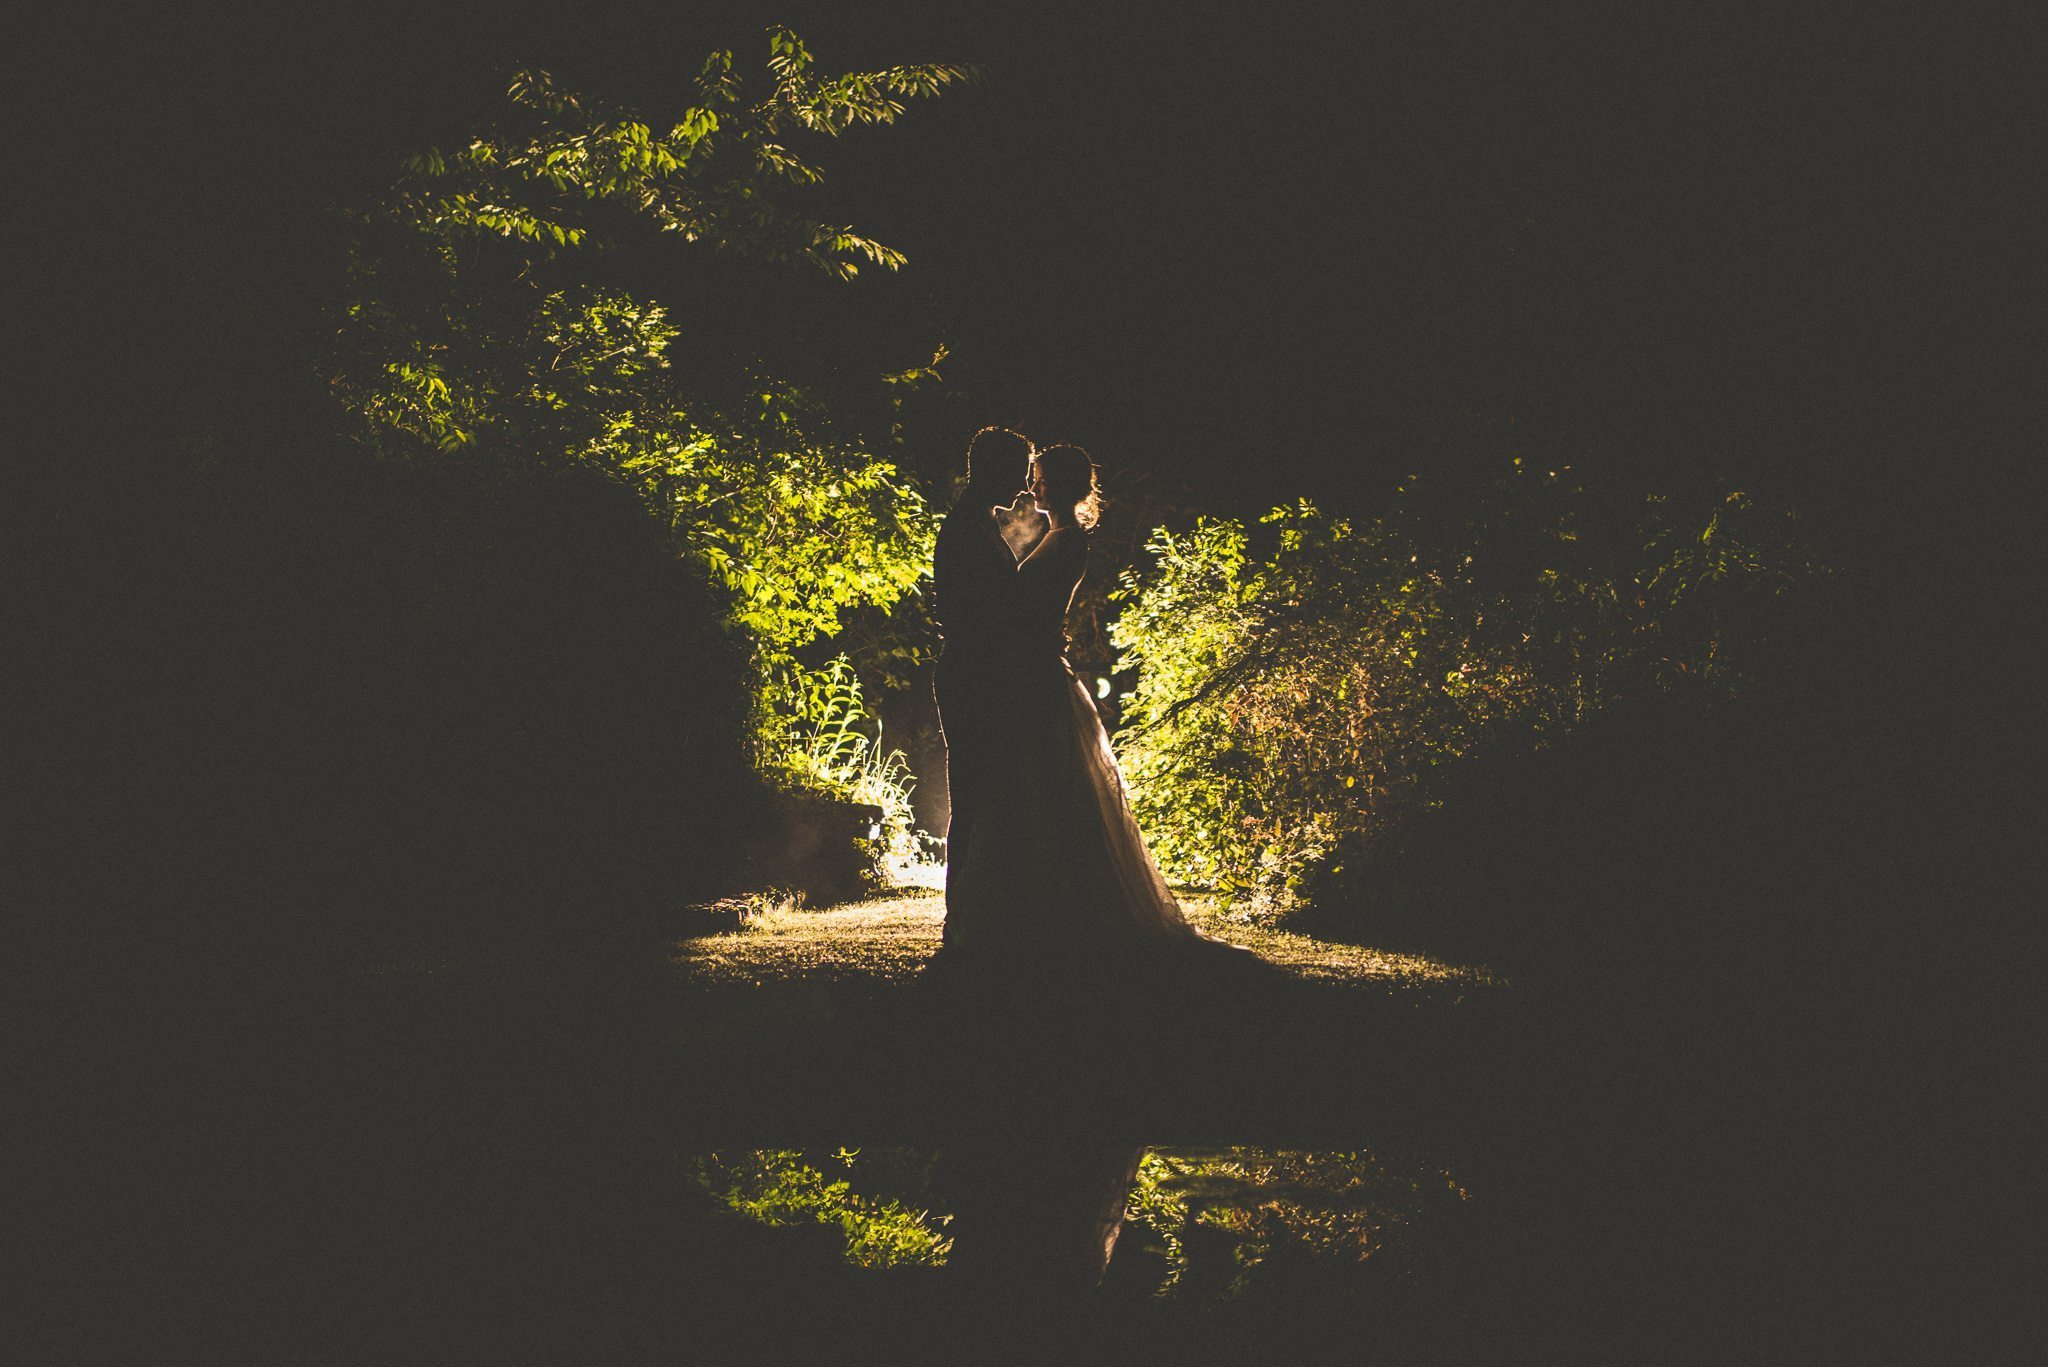 Bride and groom creative evening shot with a lake reflection by Maria Assia Photography